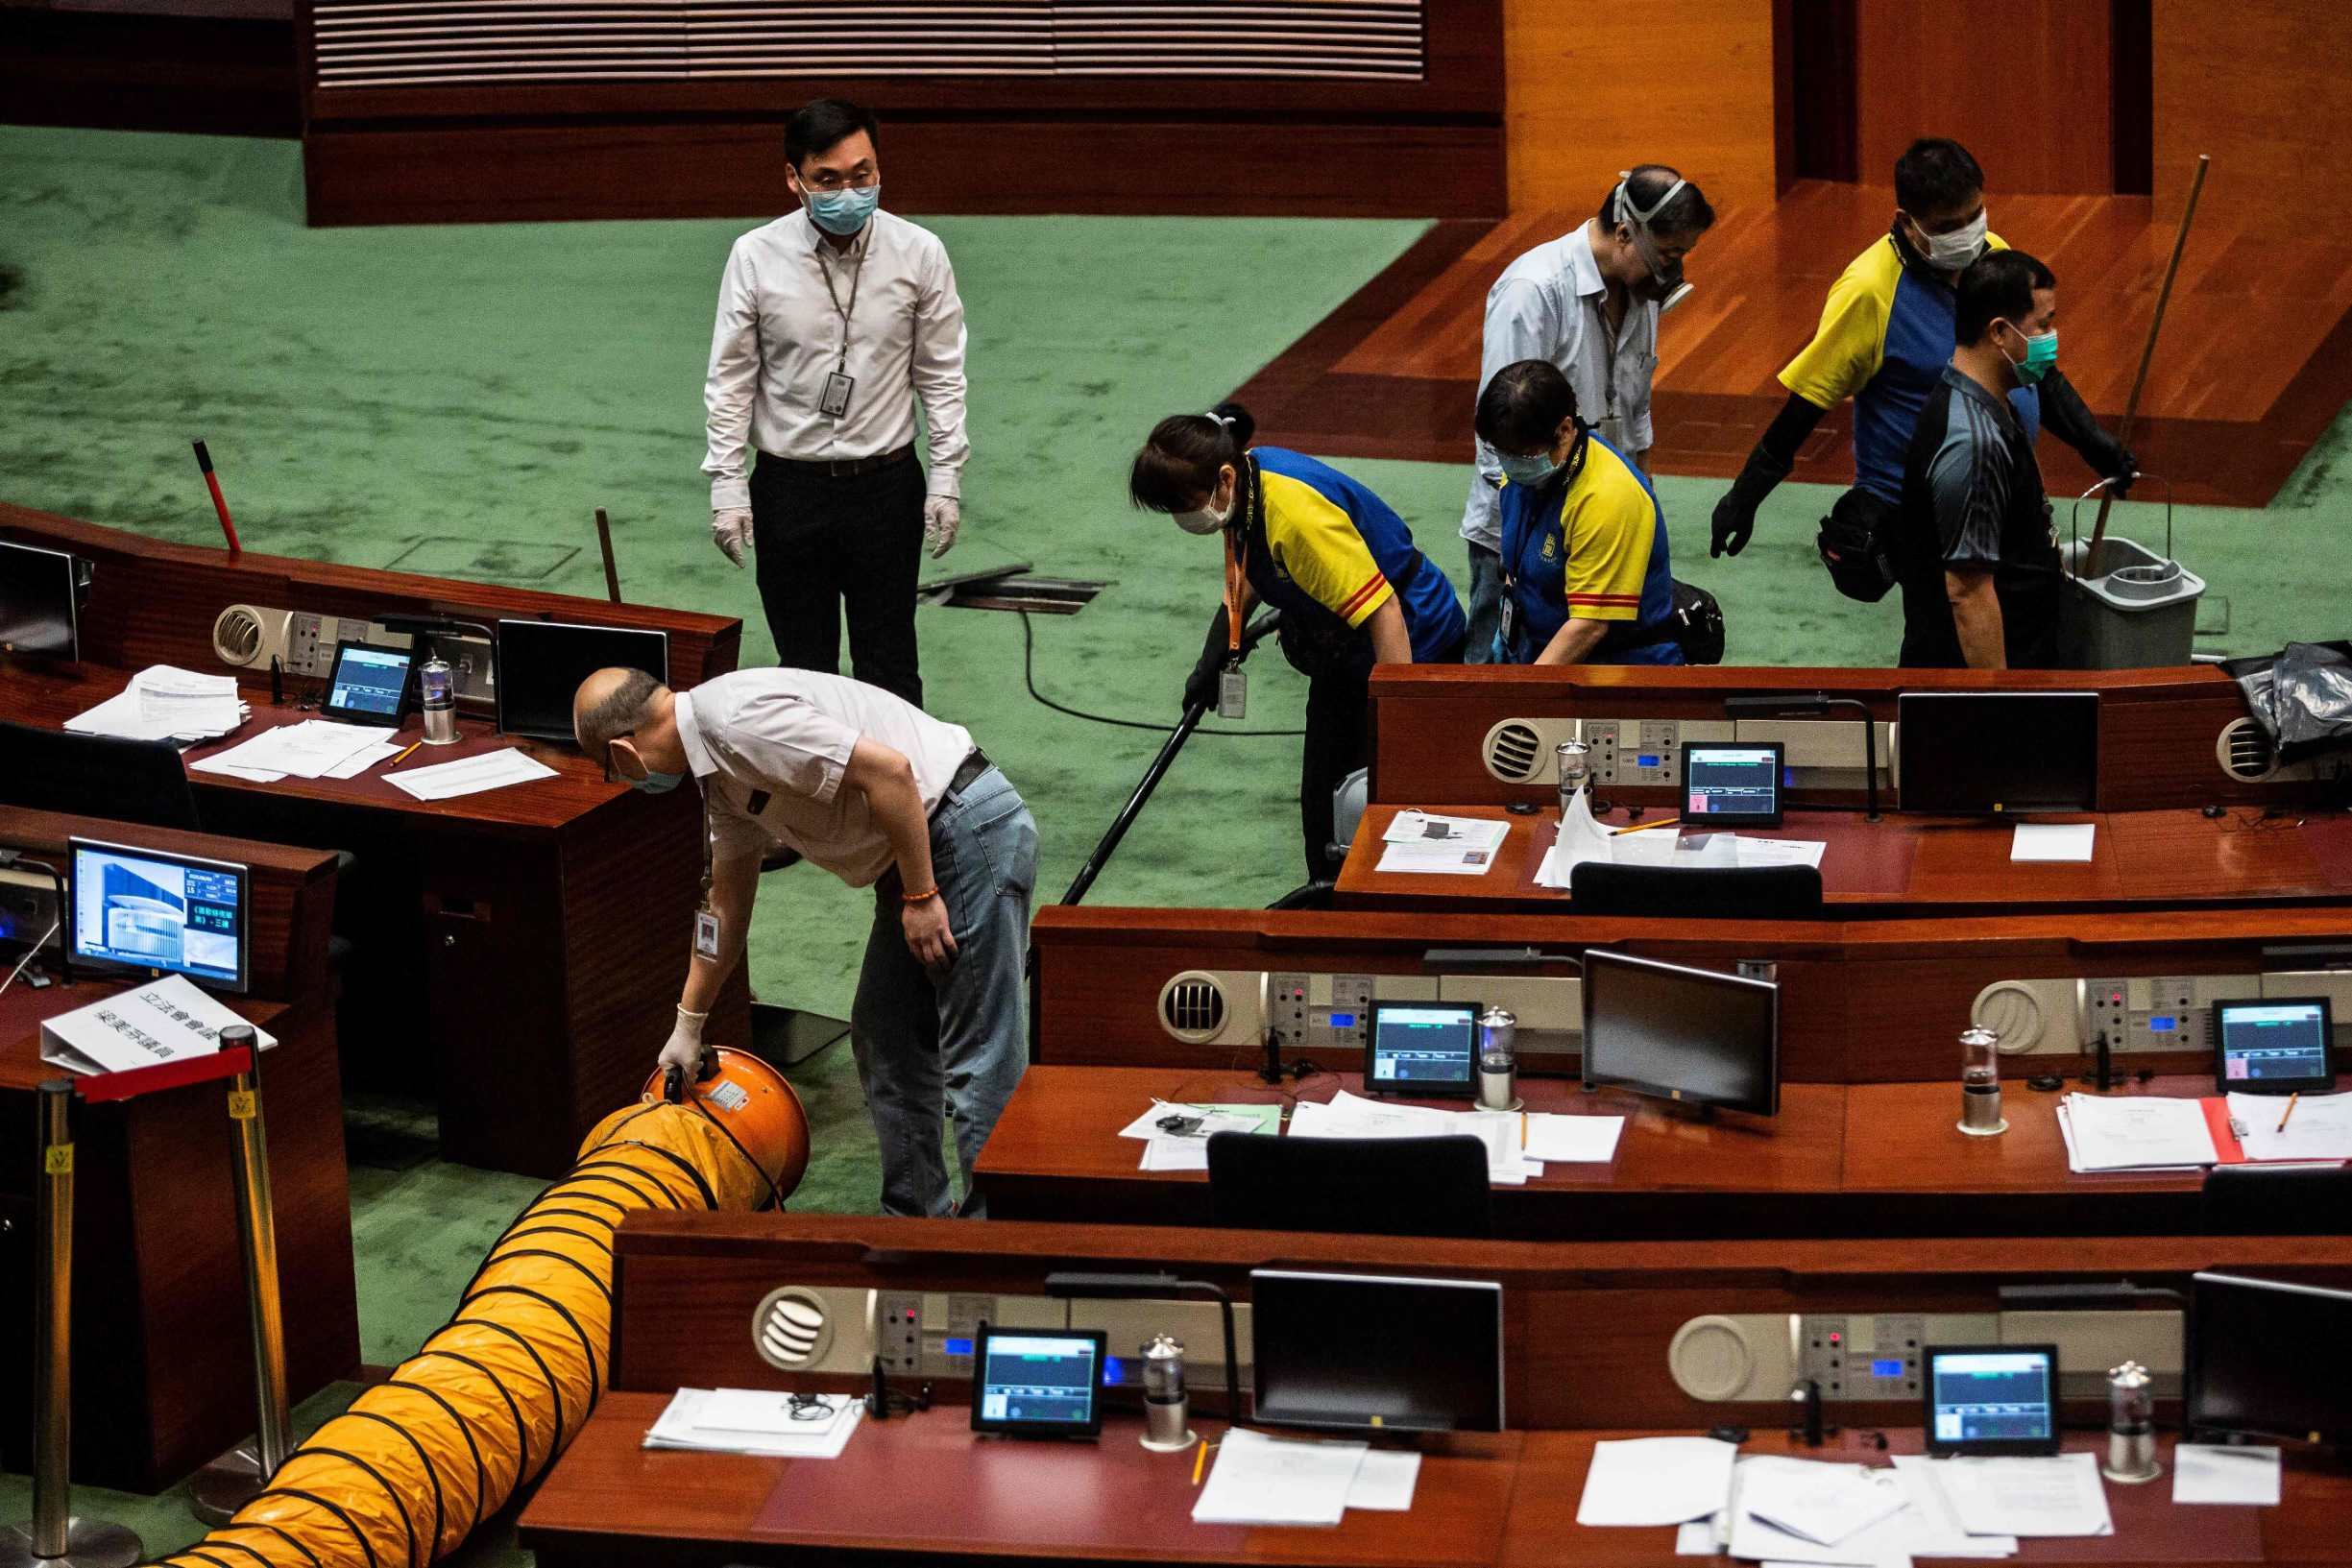 A ventilation tube (L) is set up as workers (top R) clean a section in the main chamber of the Legislative Council after pan-democrat lawmakers hurled an odorous liquid during the third reading of the national anthem bill in Hong Kong on June 4, 2020, ahead of a vote over a law that bans insulting China's national anthem. (Photo by ISAAC LAWRENCE / AFP)